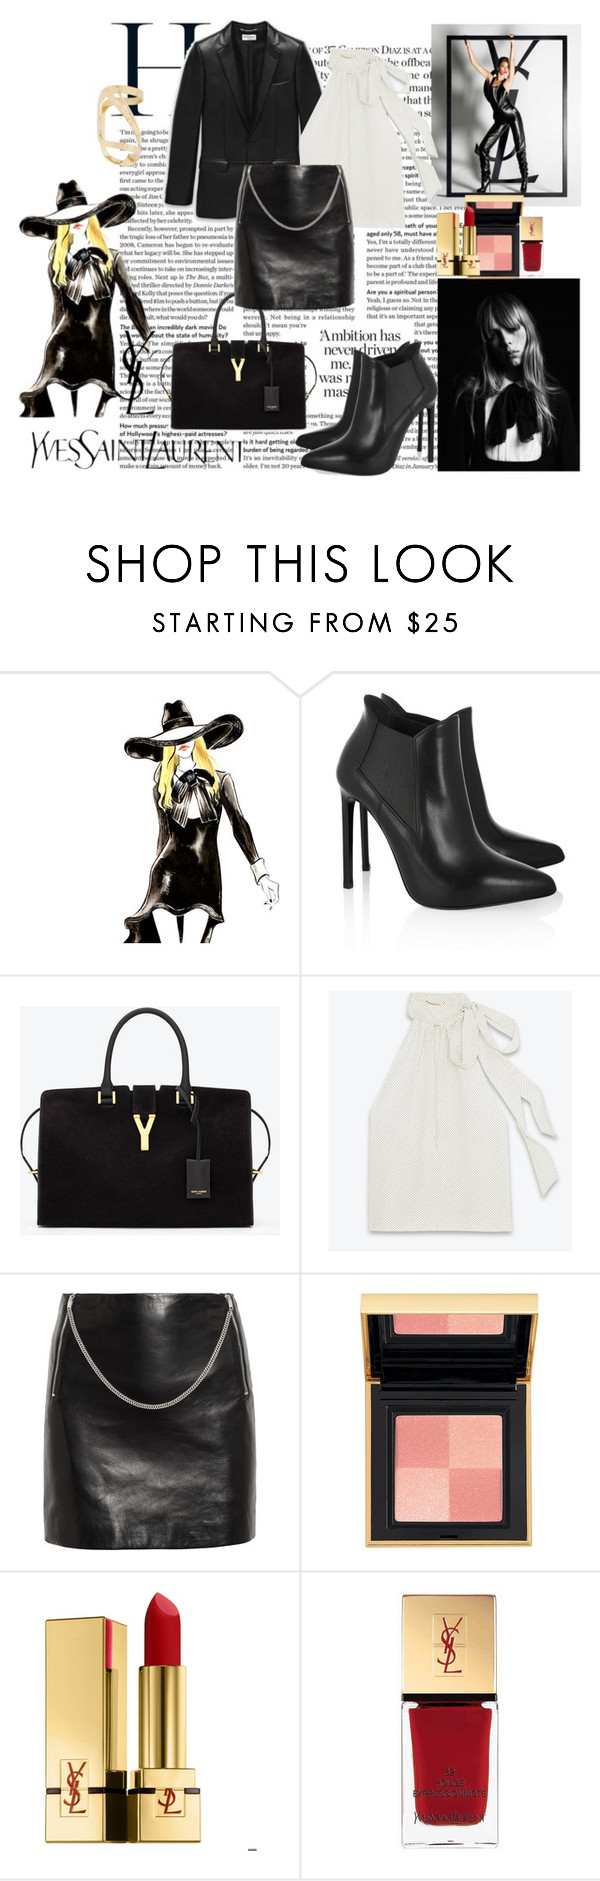 """""""Yves Saint Laurent"""" by jenica35 ❤ liked on Polyvore featuring Yves Saint Laurent"""